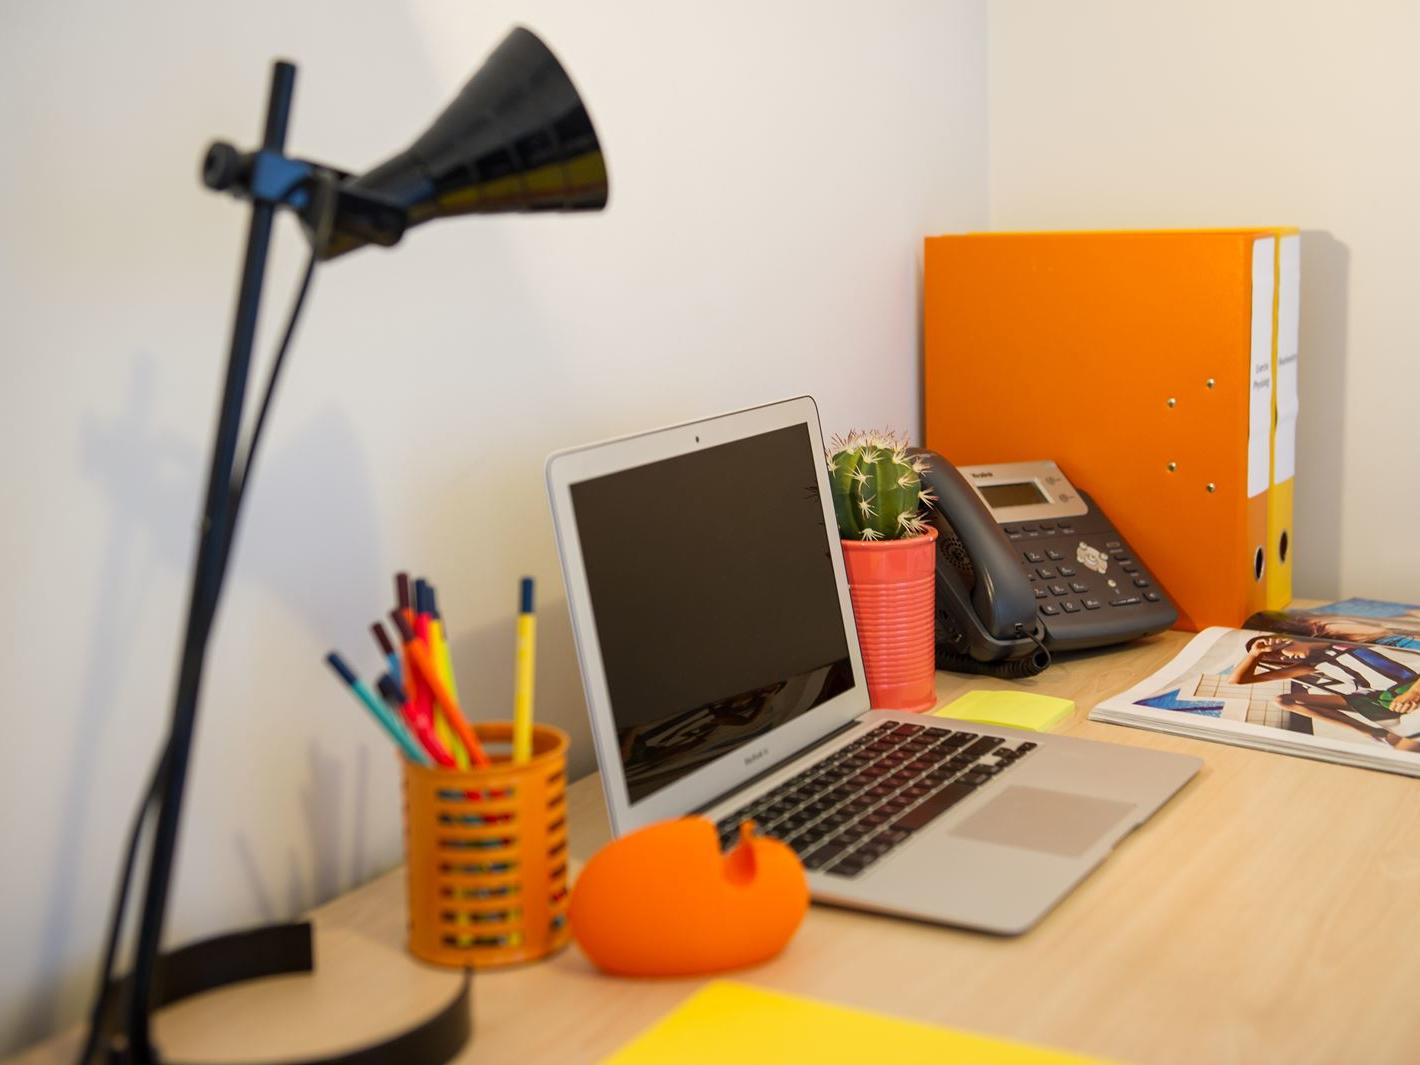 Each apartment includes a large study desk with chair